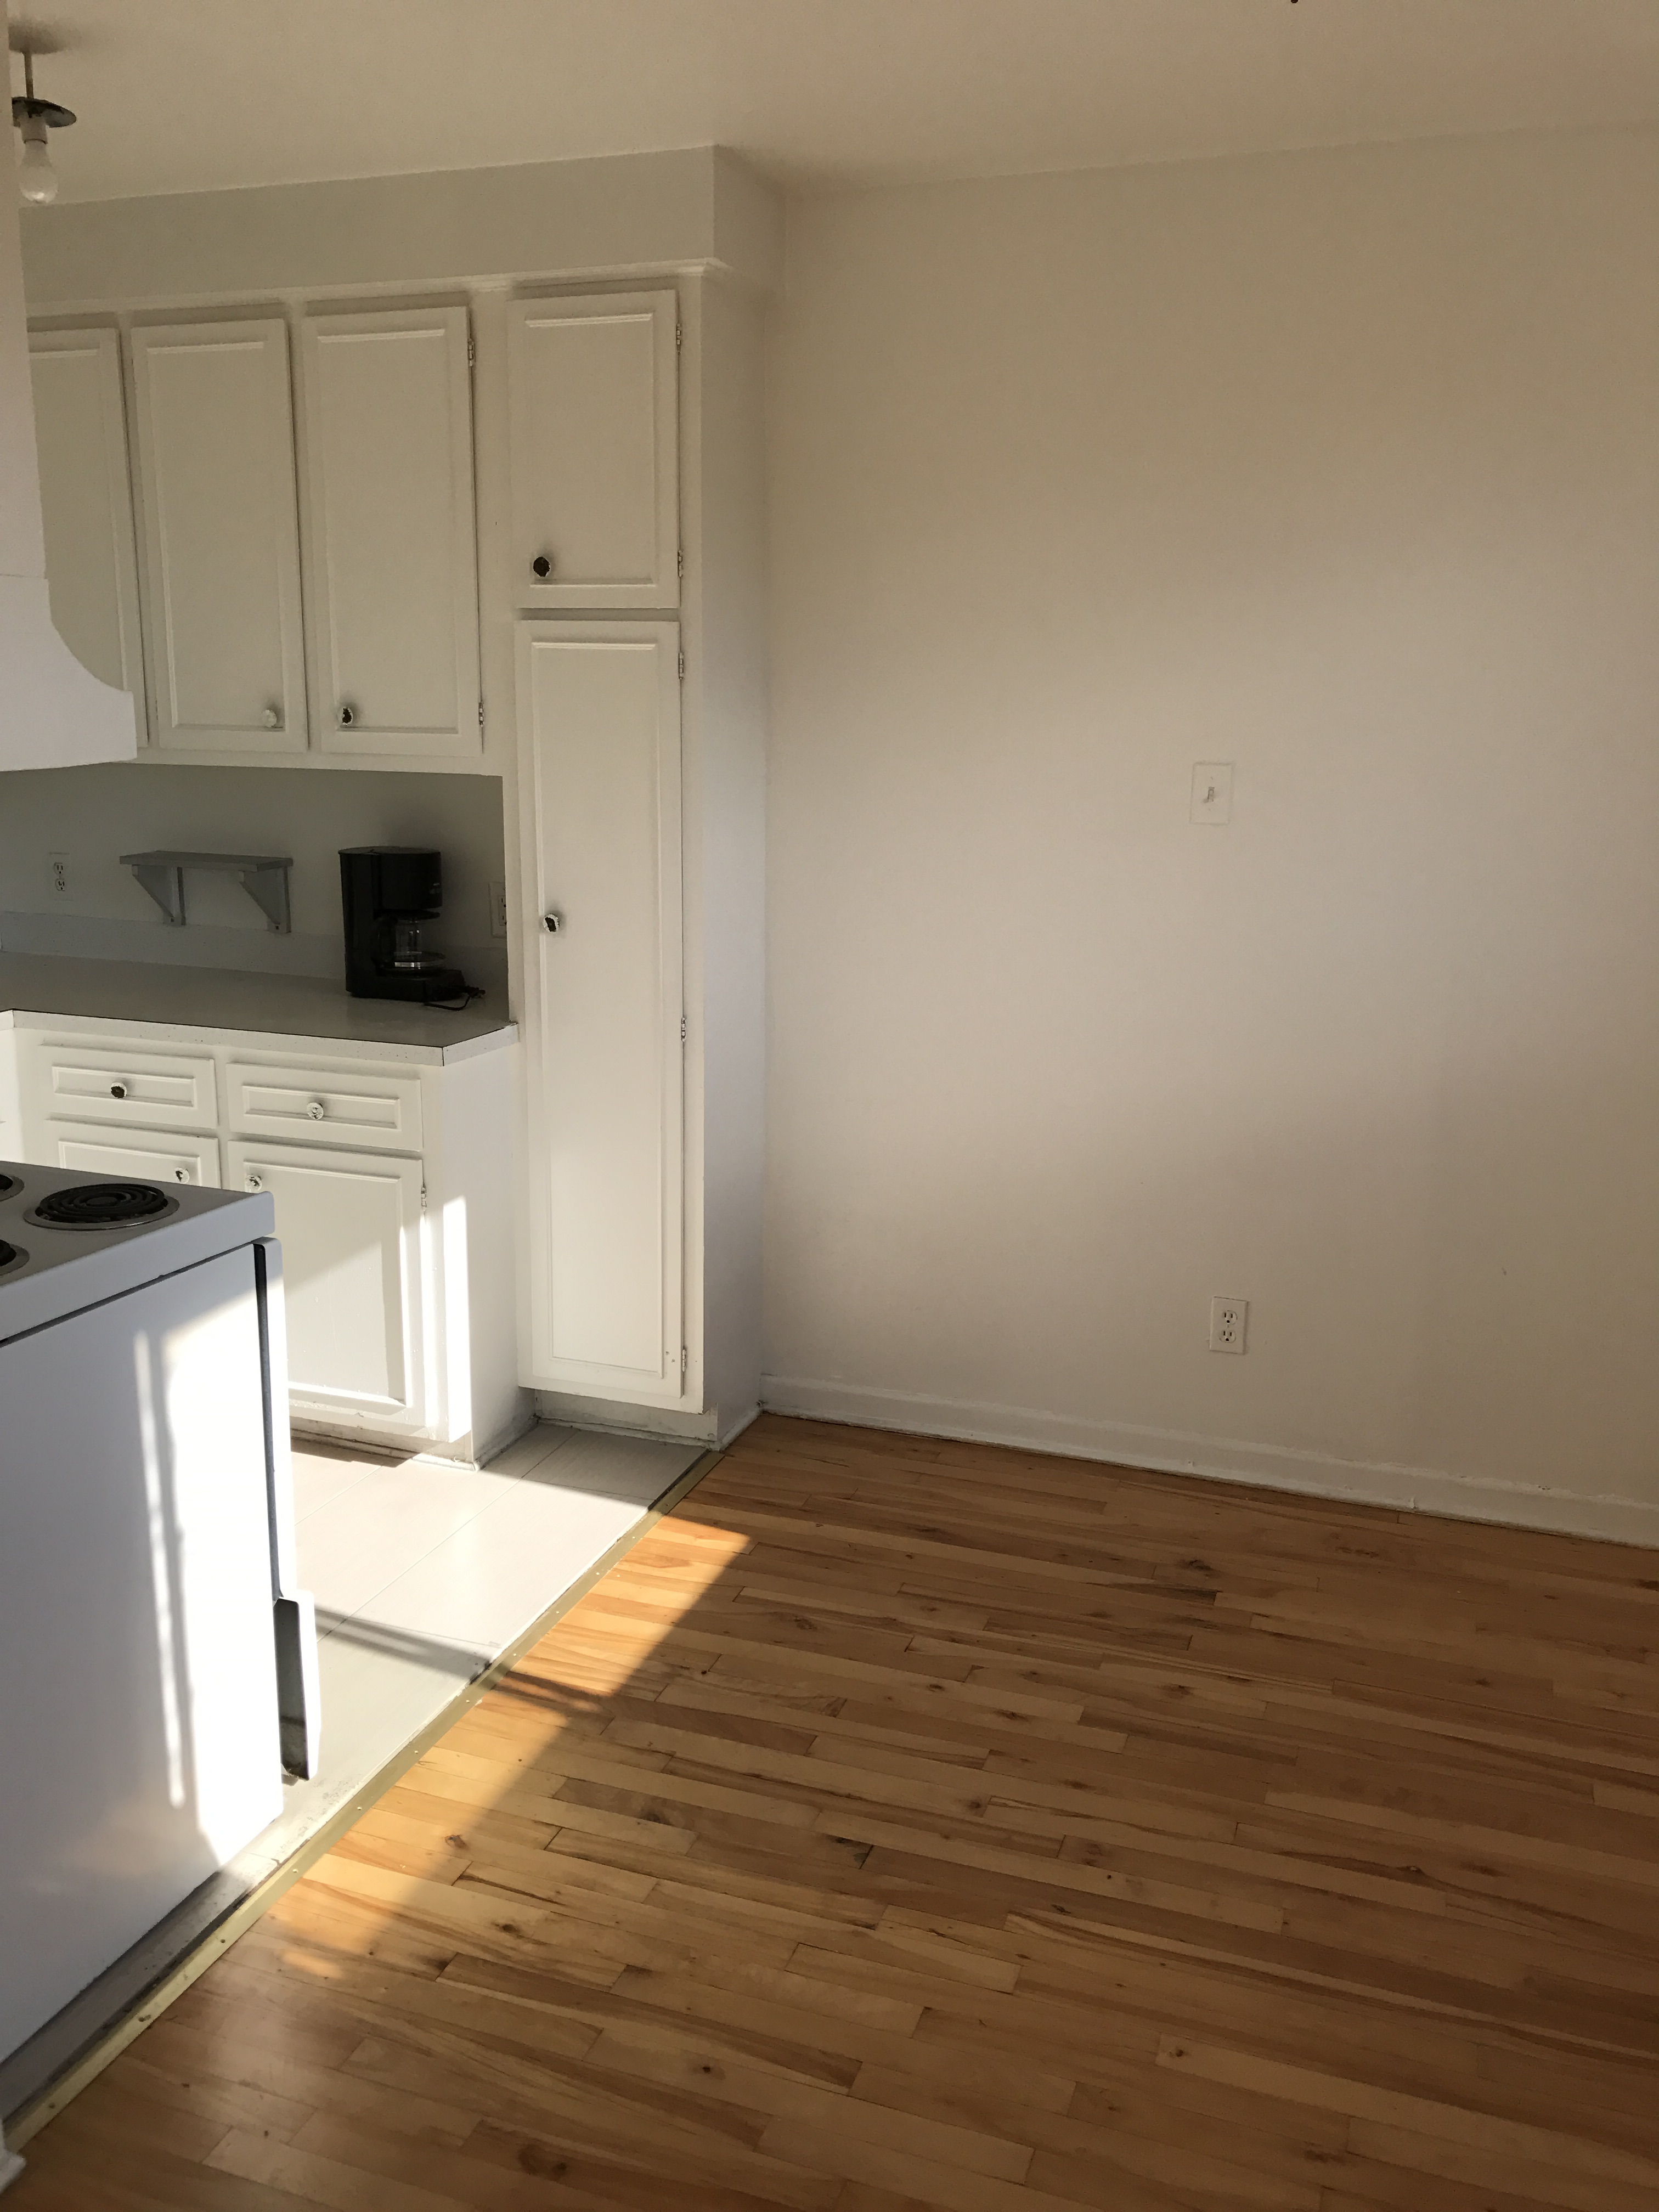 1 bedroom Apartments for rent in Laval at 4750 Samson - Photo 02 - RentersPages – L21500